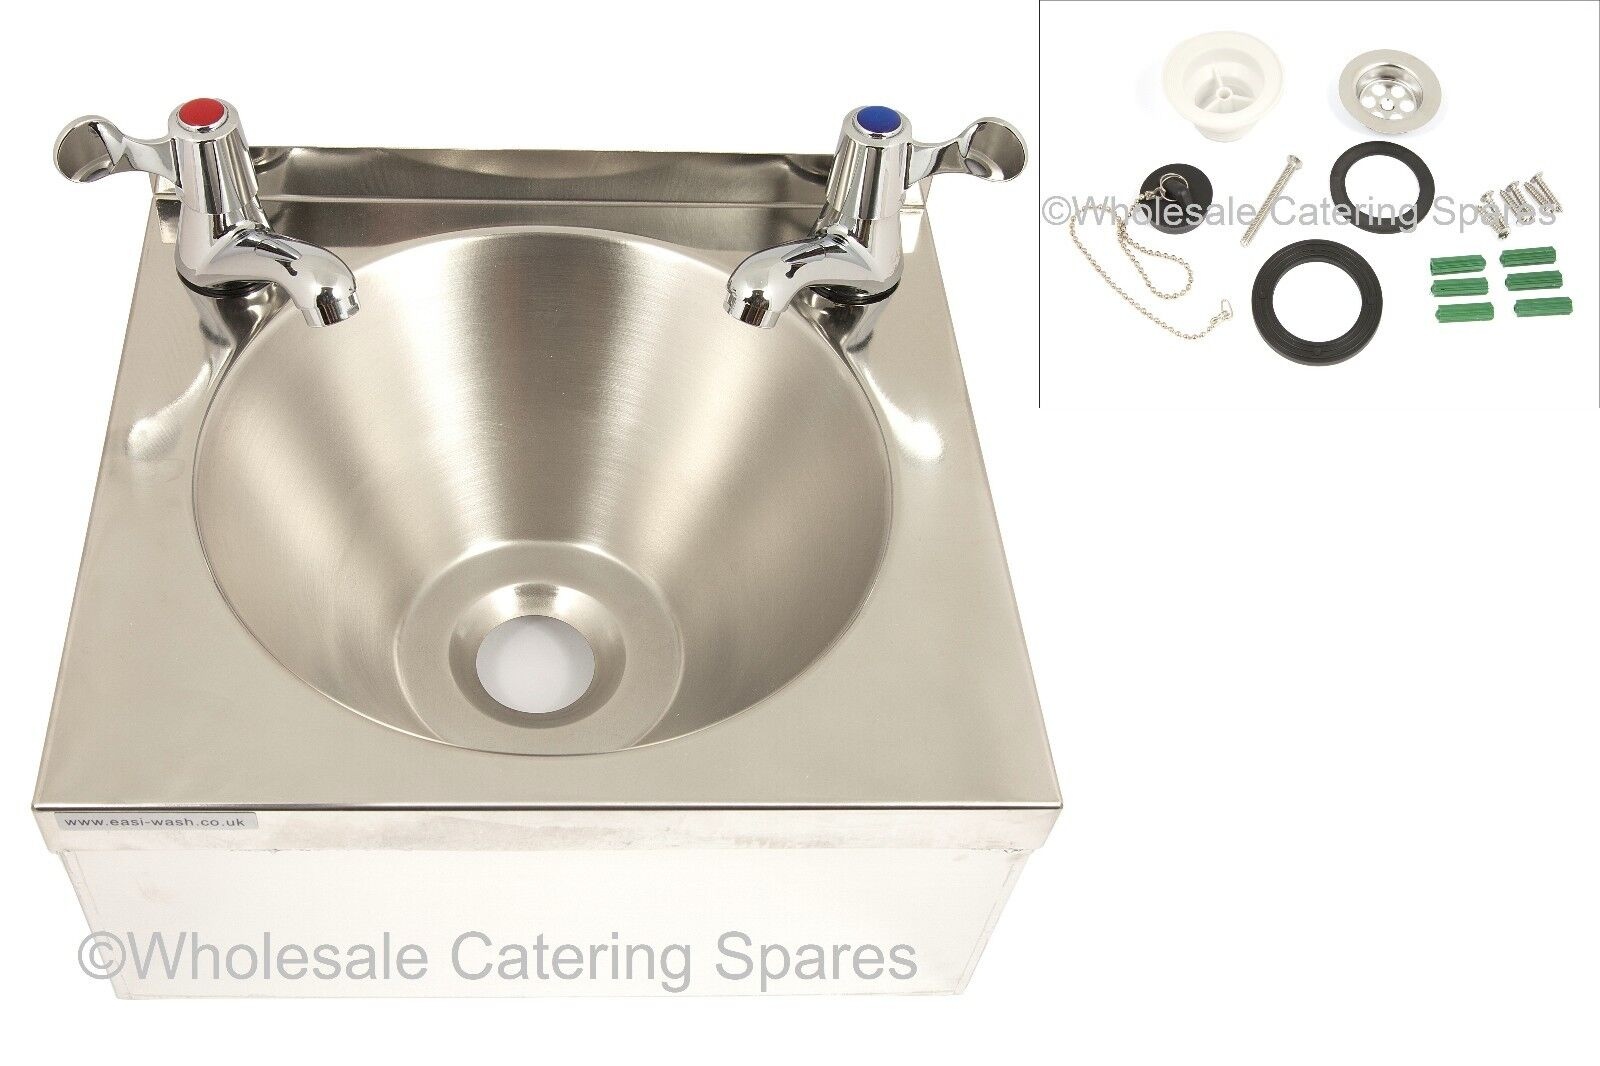 Brand New Stainless Steel Hand Wash Catering Basin Sink